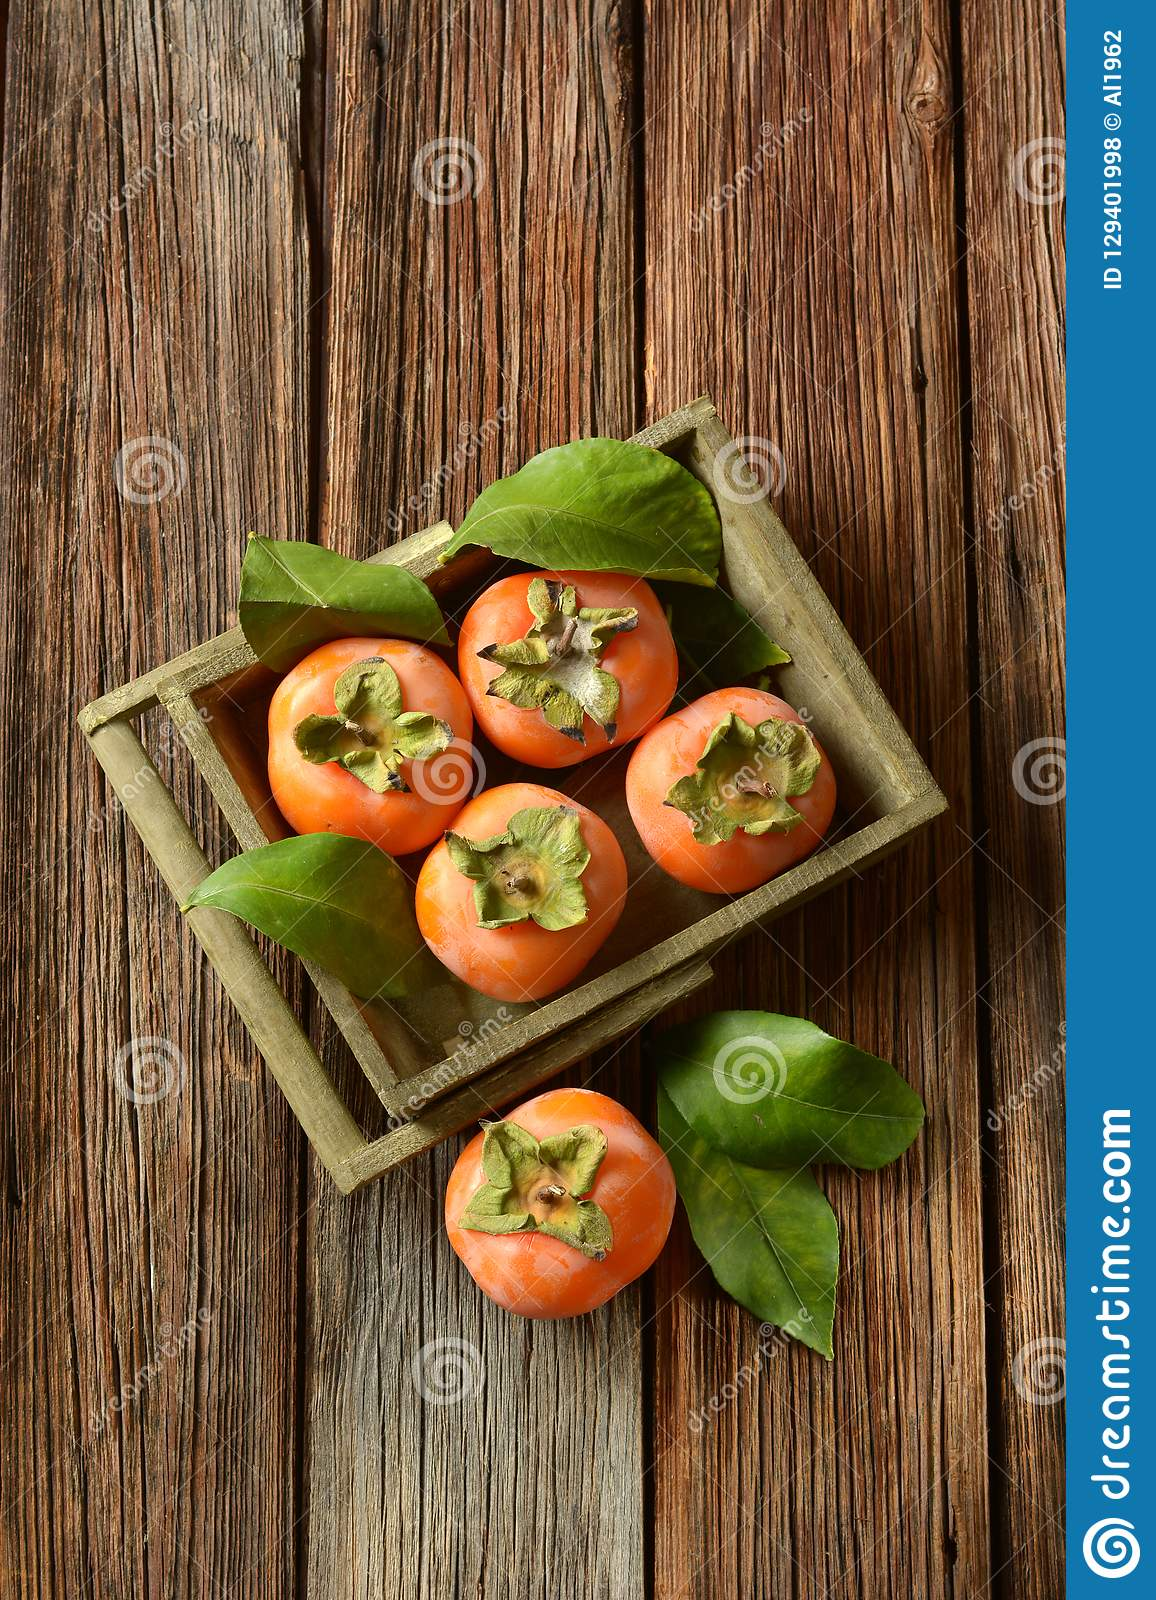 Pile of ripe persimmons on wooden table. Closeup royalty free stock photos